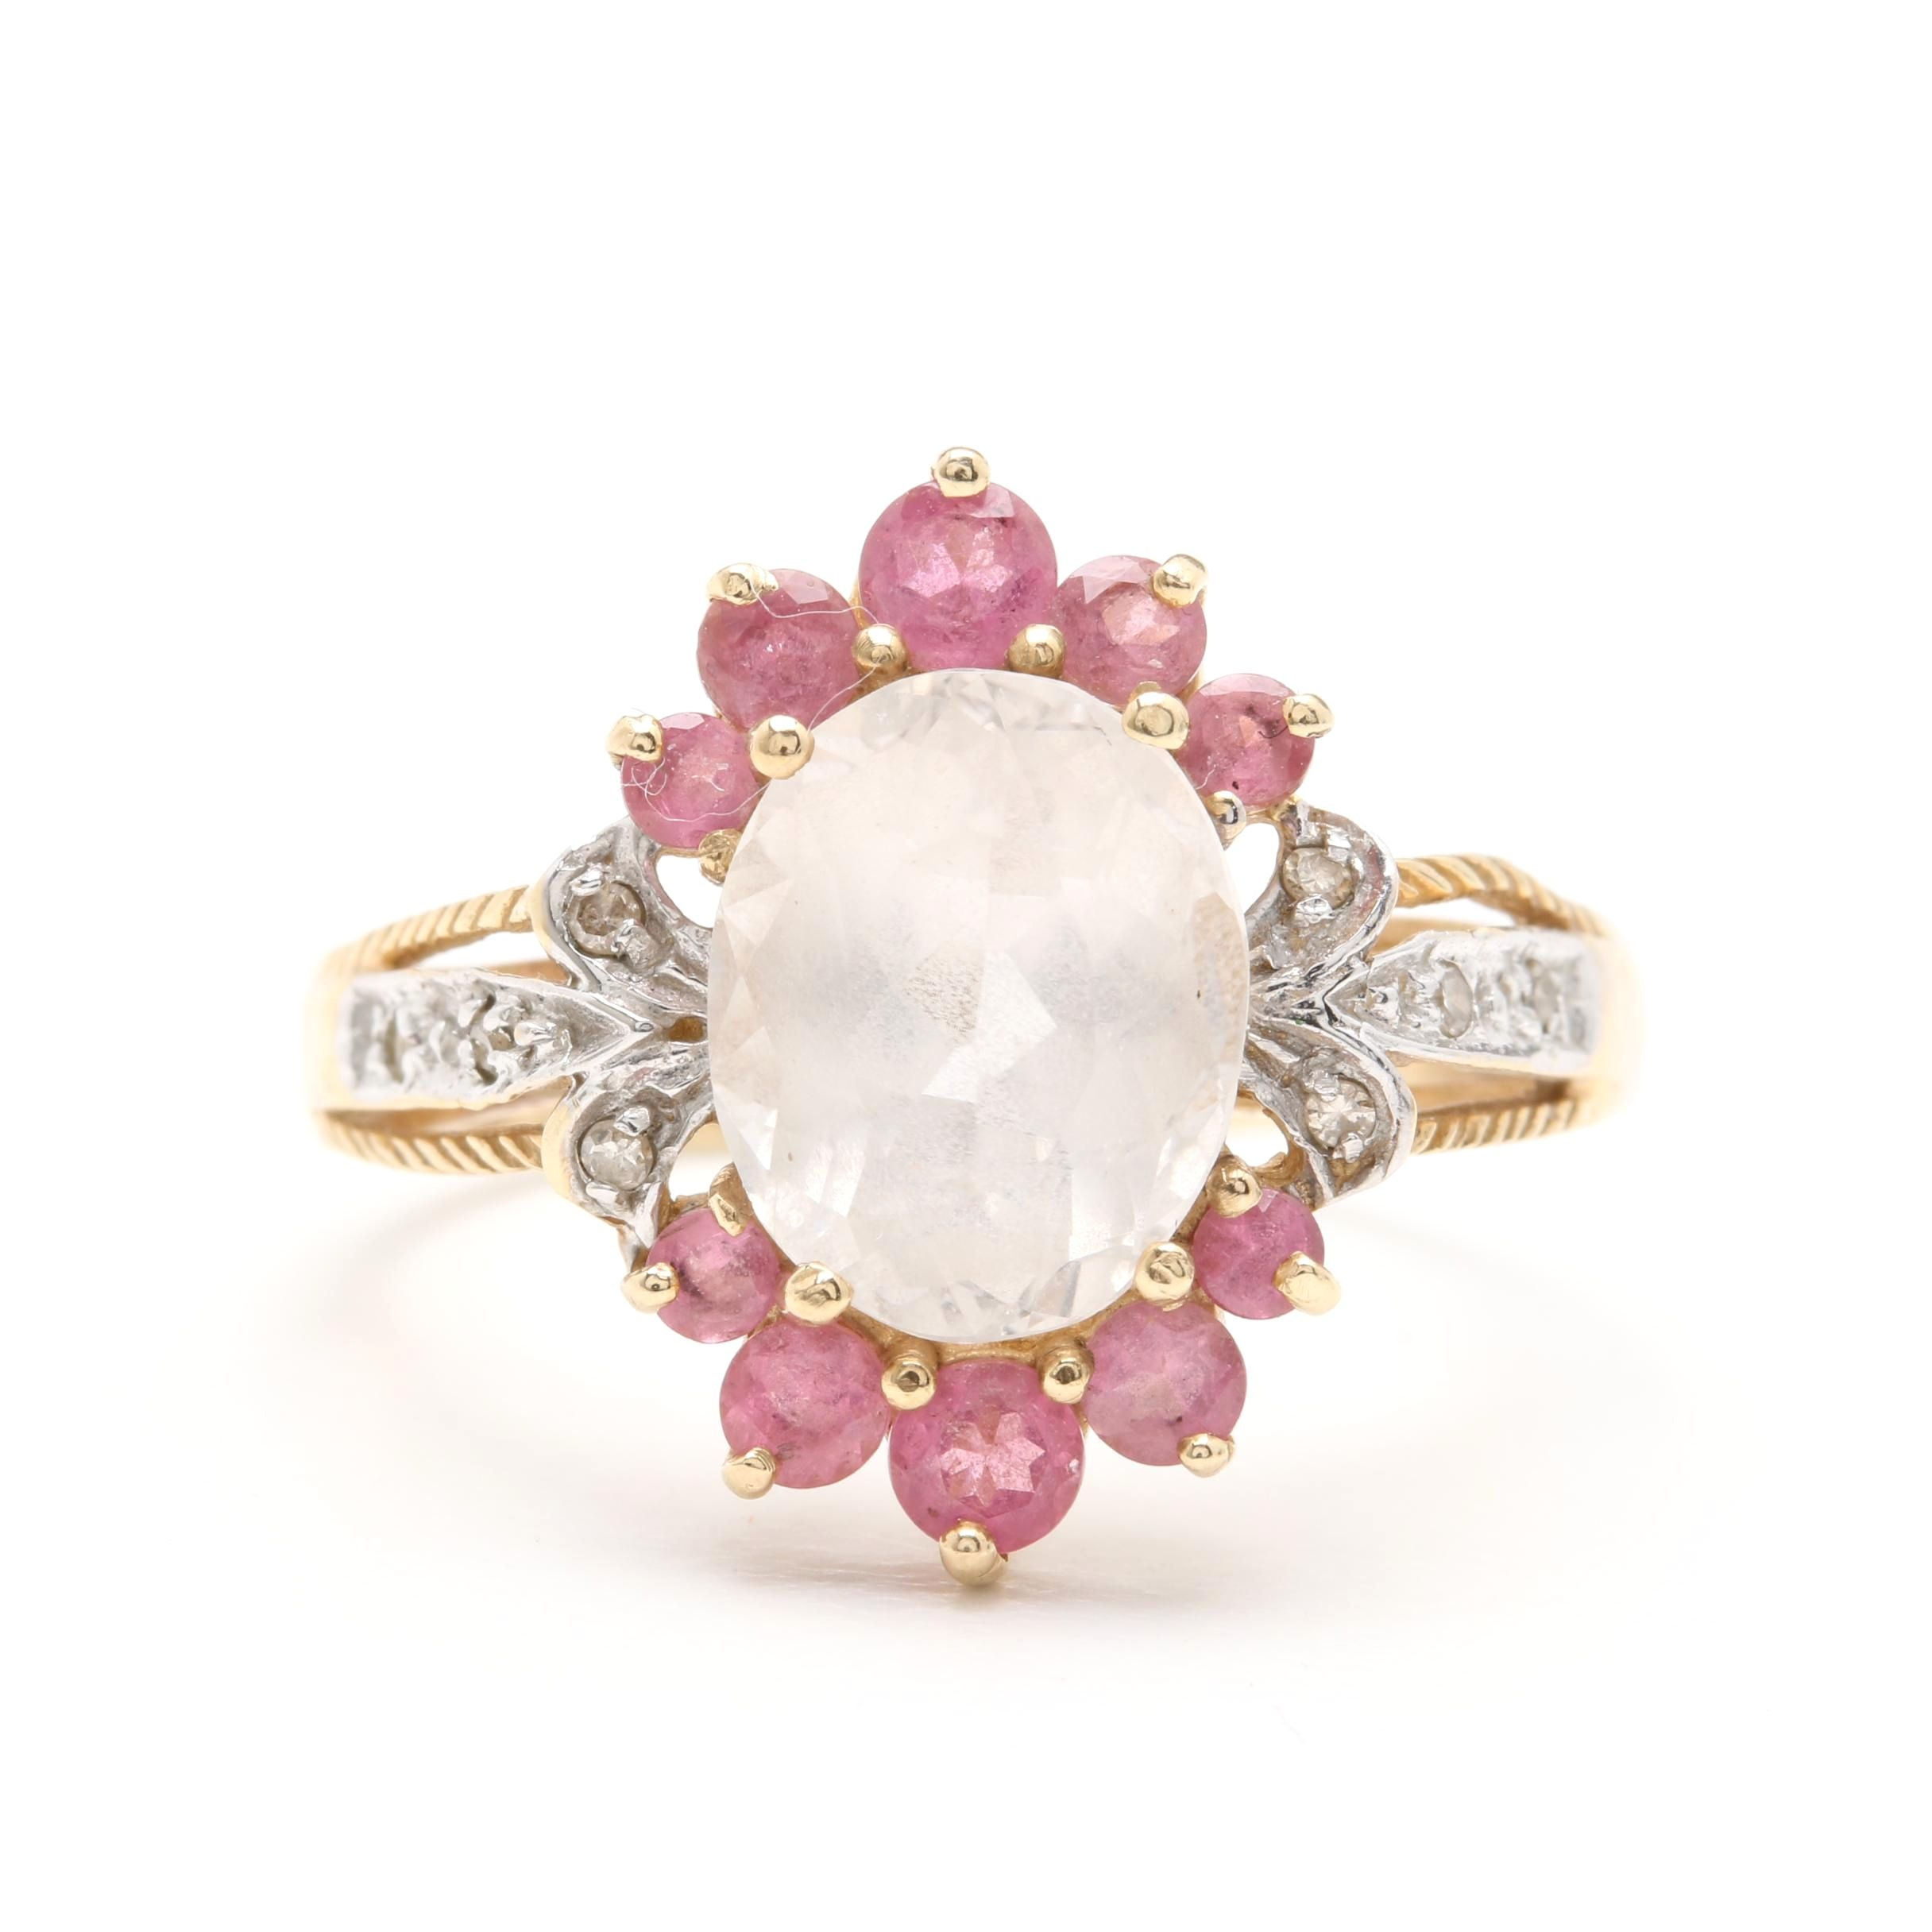 10K Yellow Gold Quartz Crystal, Pink Sapphire and Diamond Ring